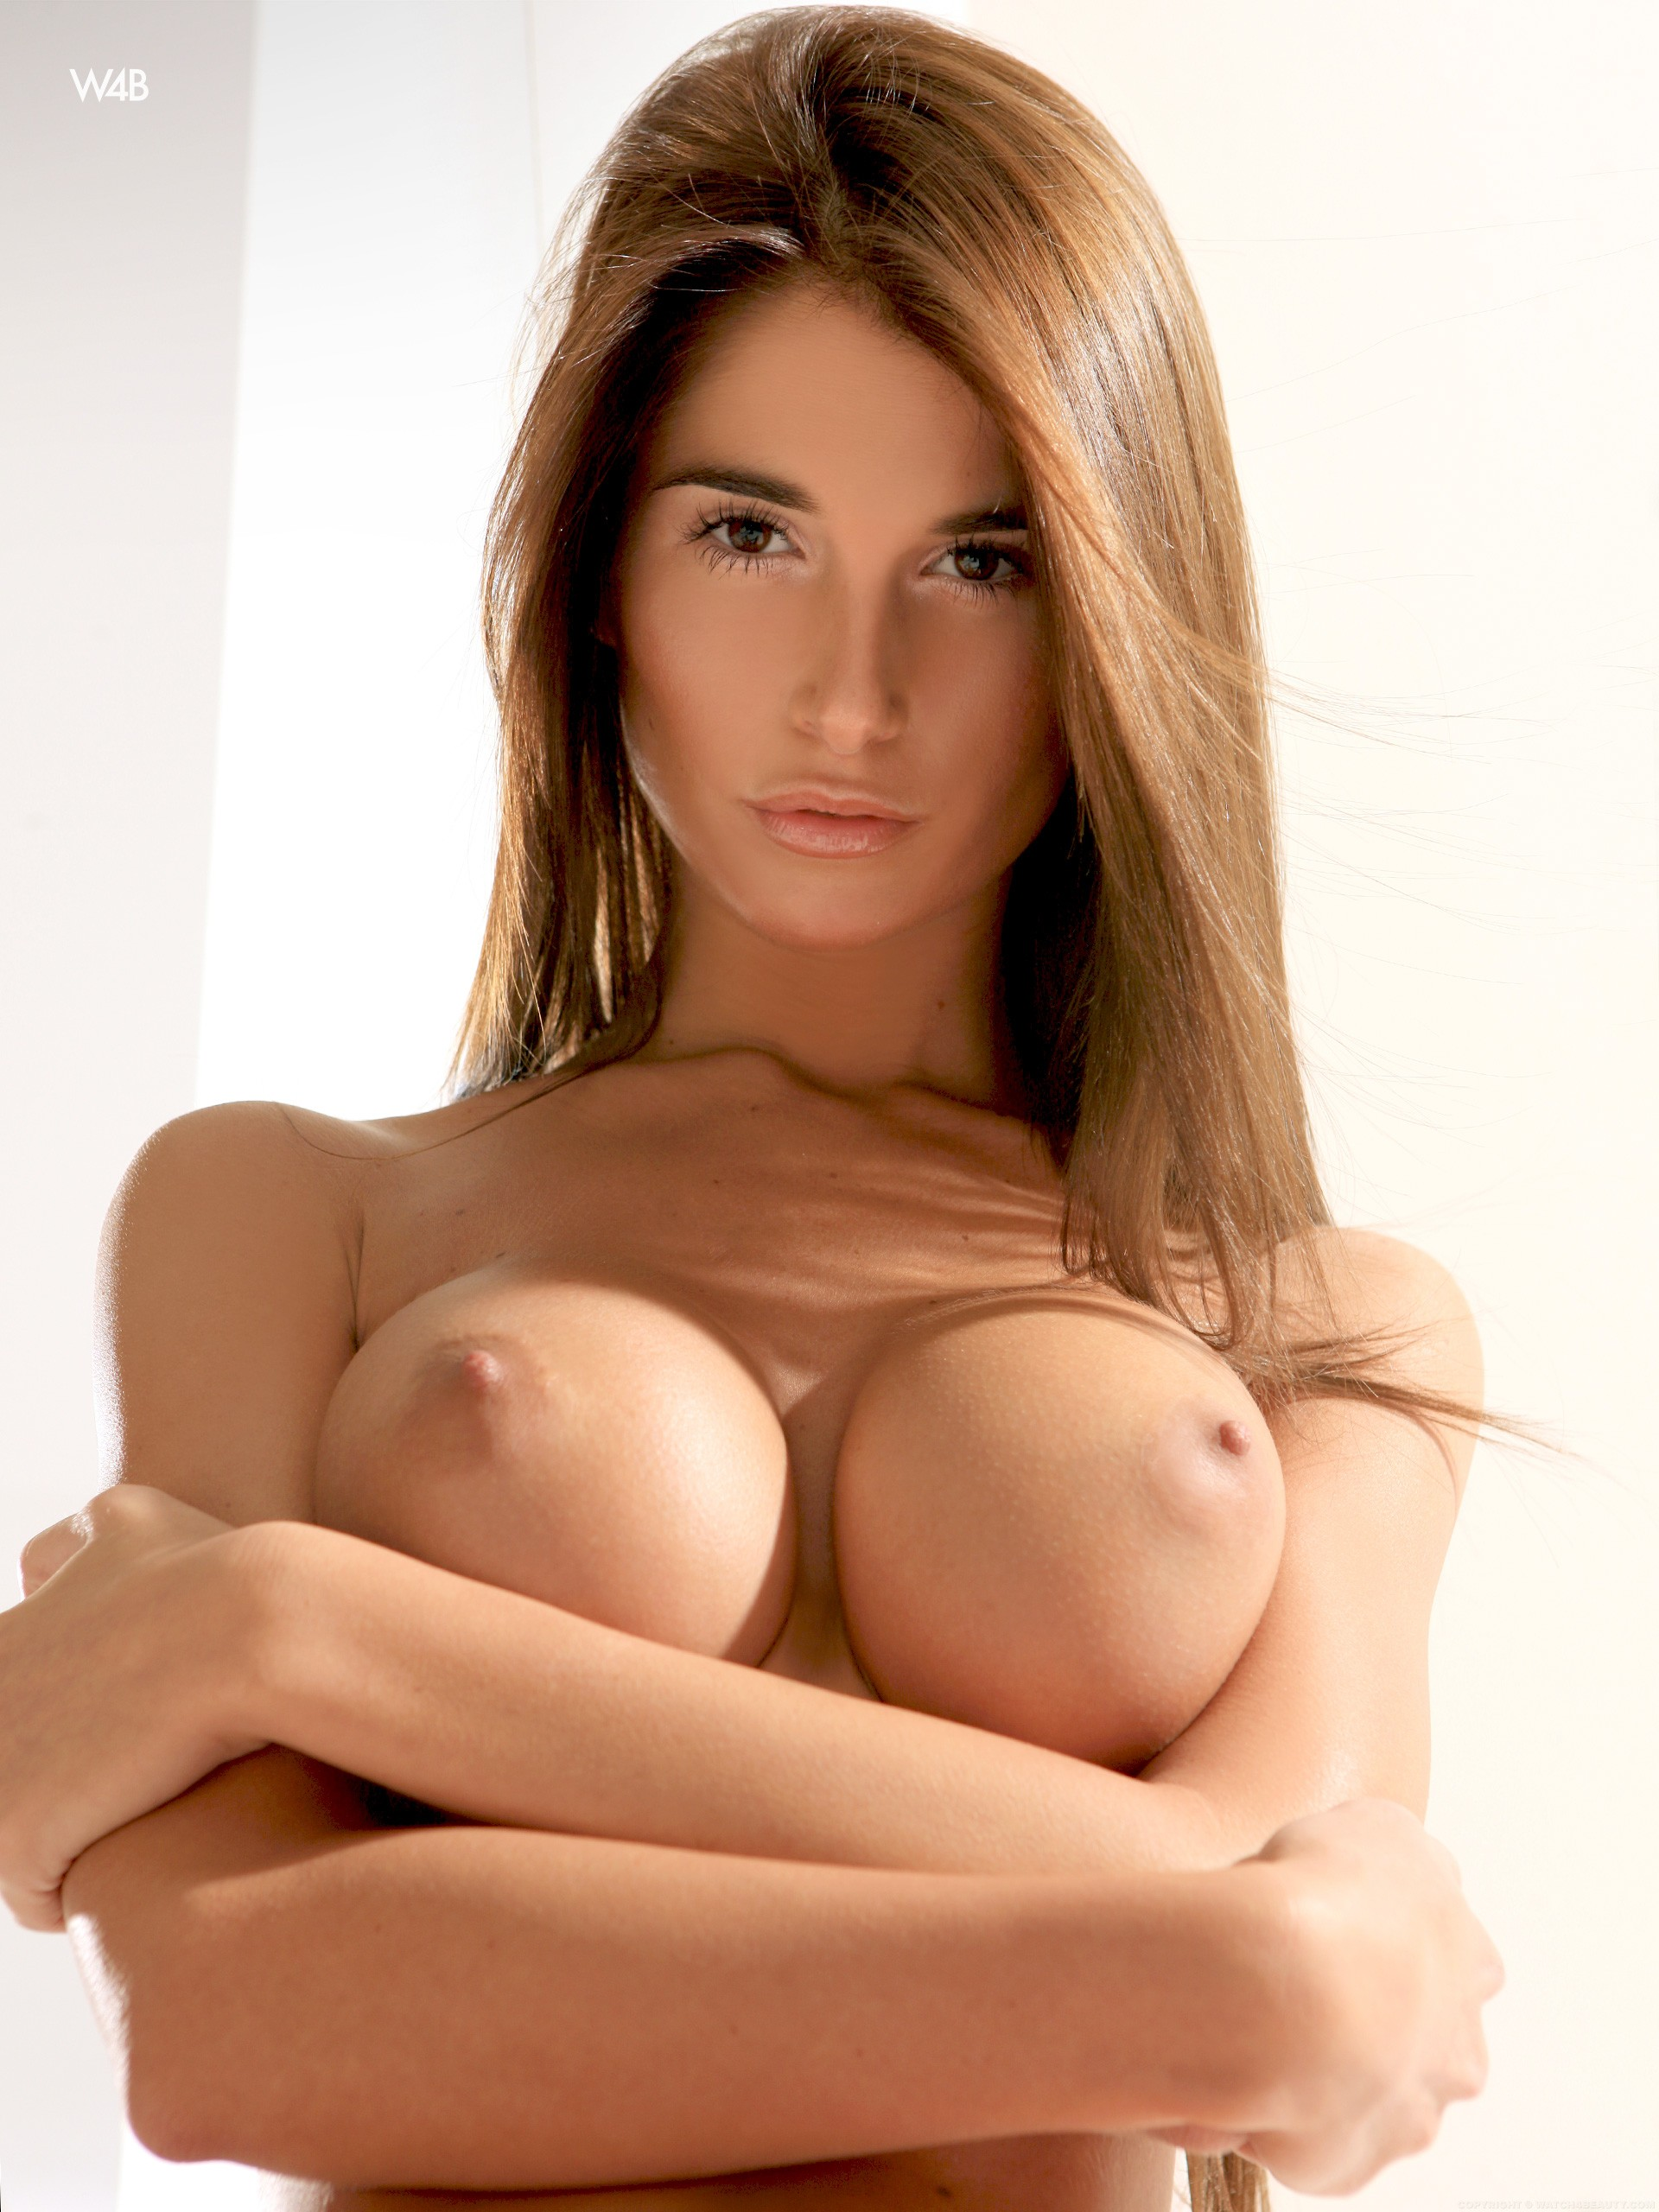 Hot naked pictures of nicole austin